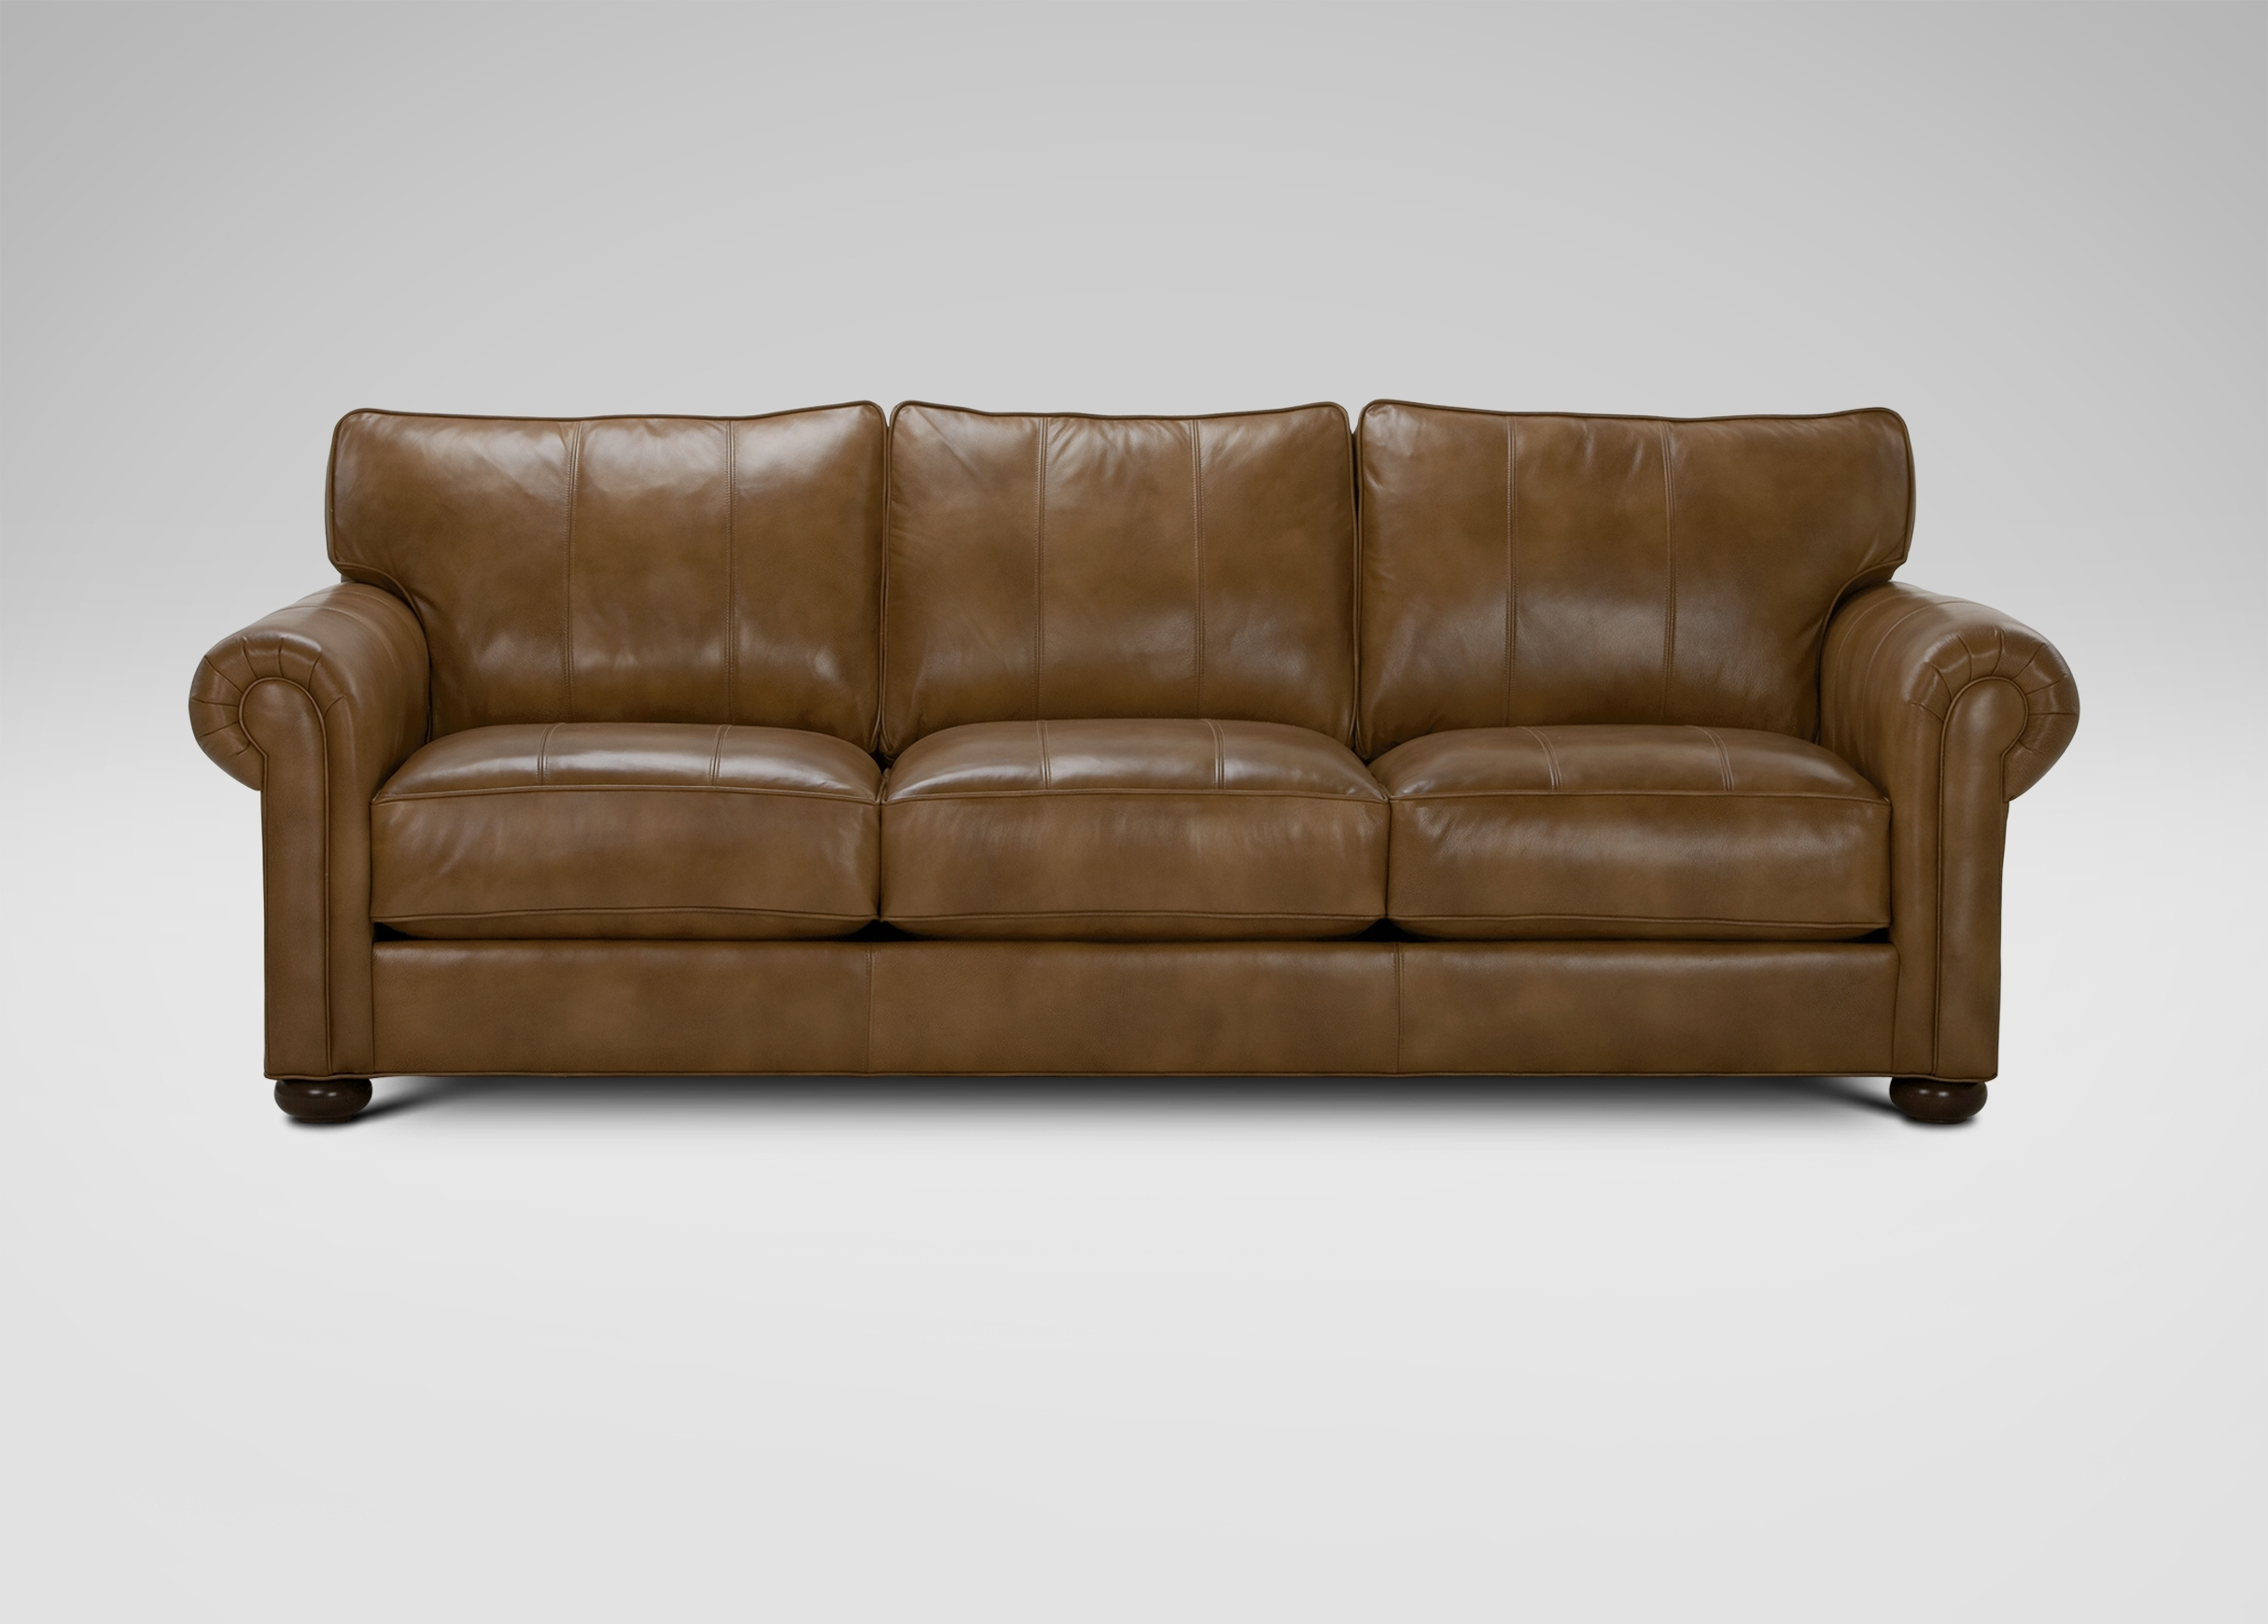 Sofas & Loveseats Intended For Sectional Sofas At Ethan Allen (View 18 of 20)